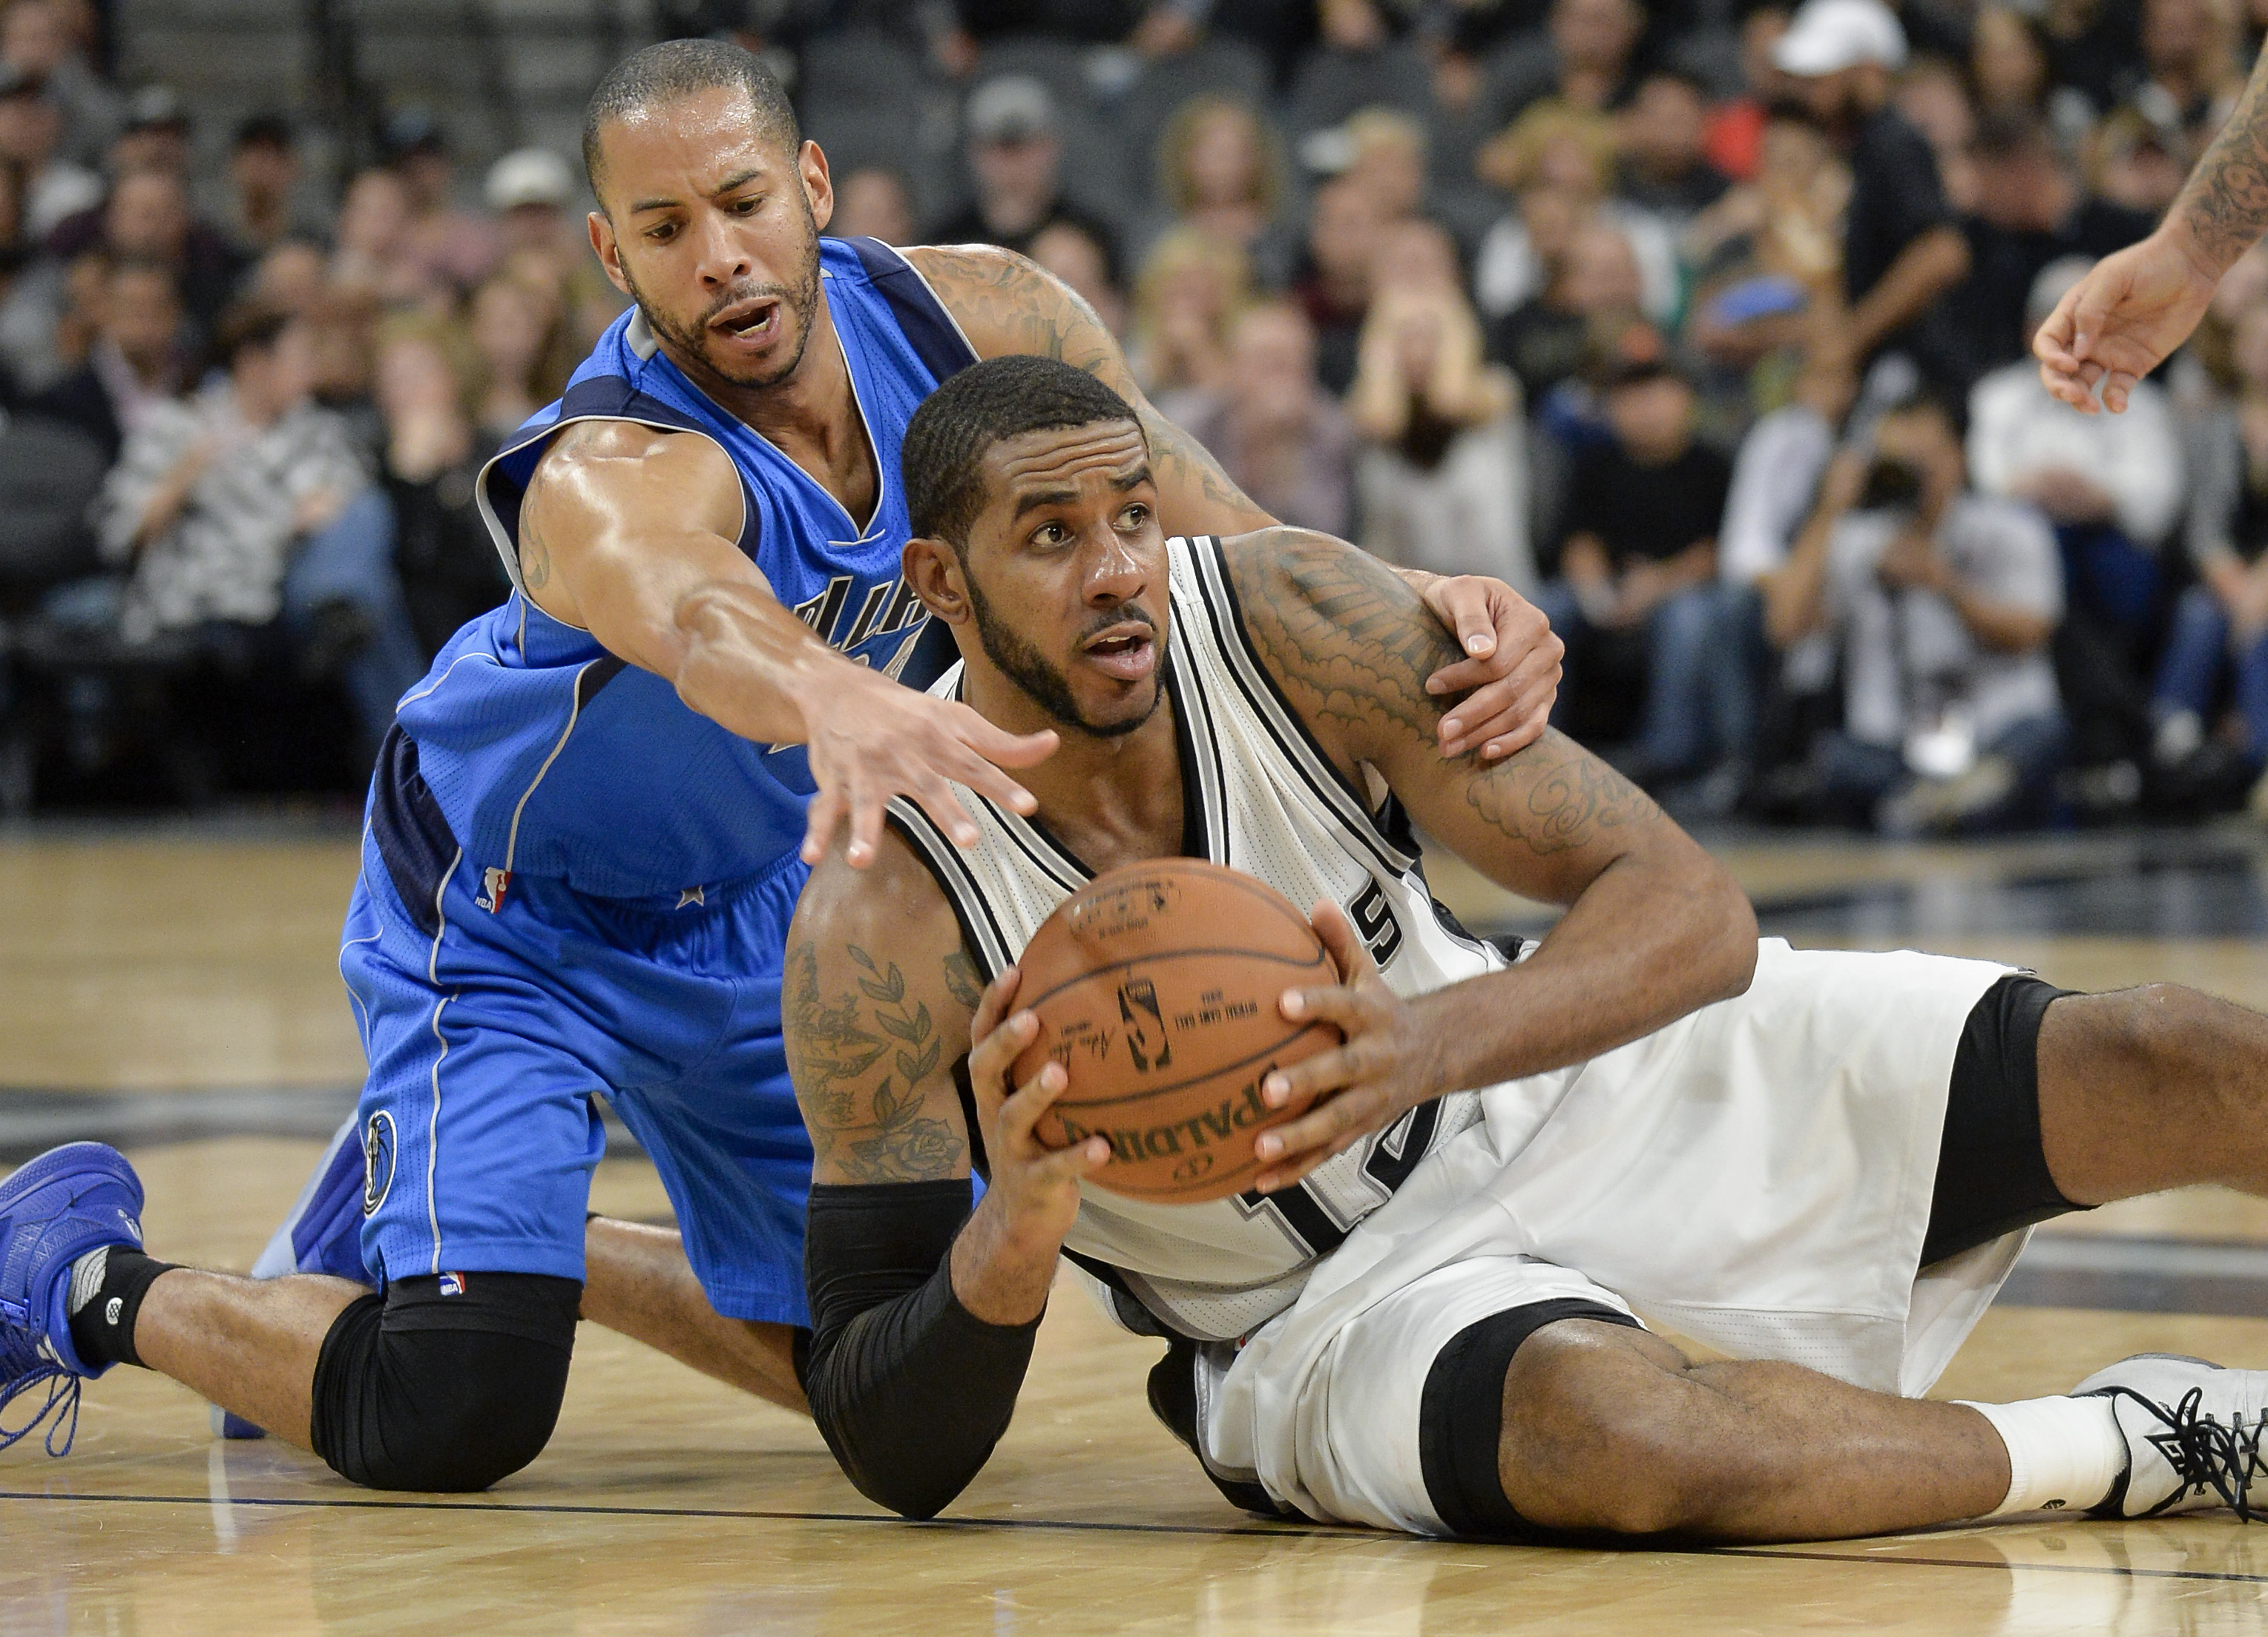 San Antonio Spurs forward LaMarcus Aldridge, right, tangles with Dallas Mavericks guard Devin Harris during the second half of an NBA basketball game, Wednesday, Nov. 25, 2015, in San Antonio. San Antonio won 88-83. (AP Photo/Darren Abate)